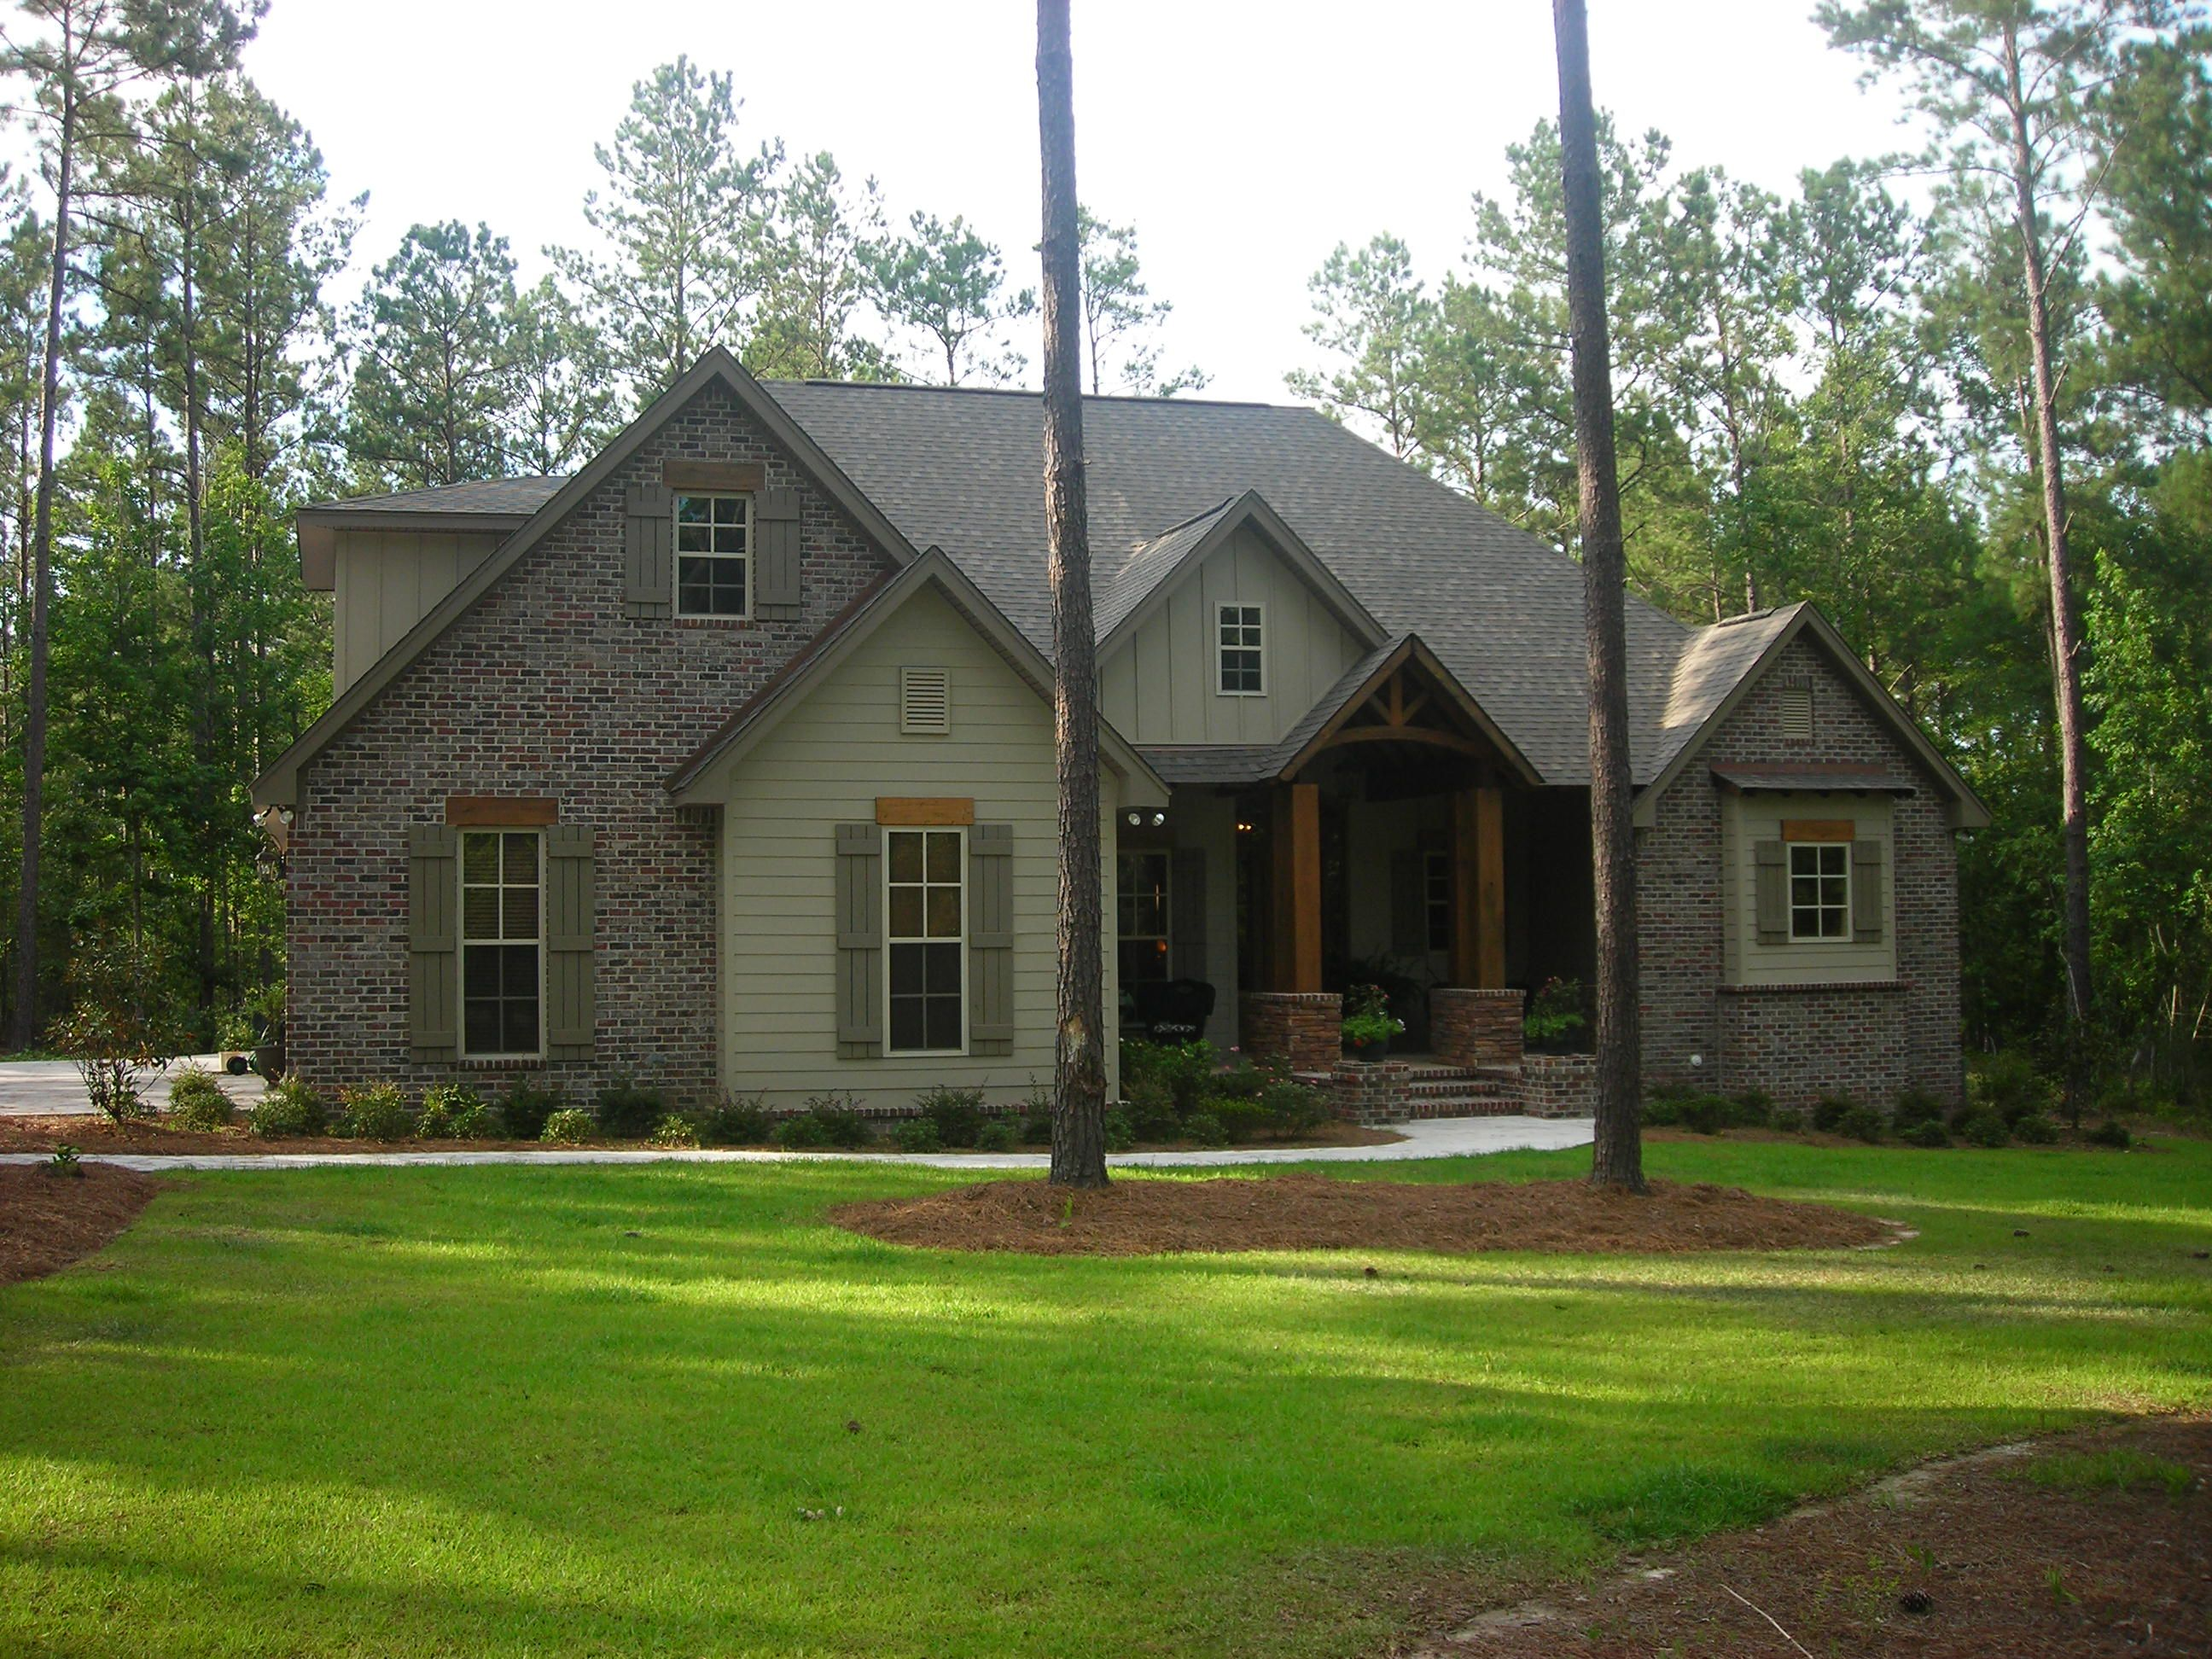 This Craftsman style home plan with Country influences House Plan